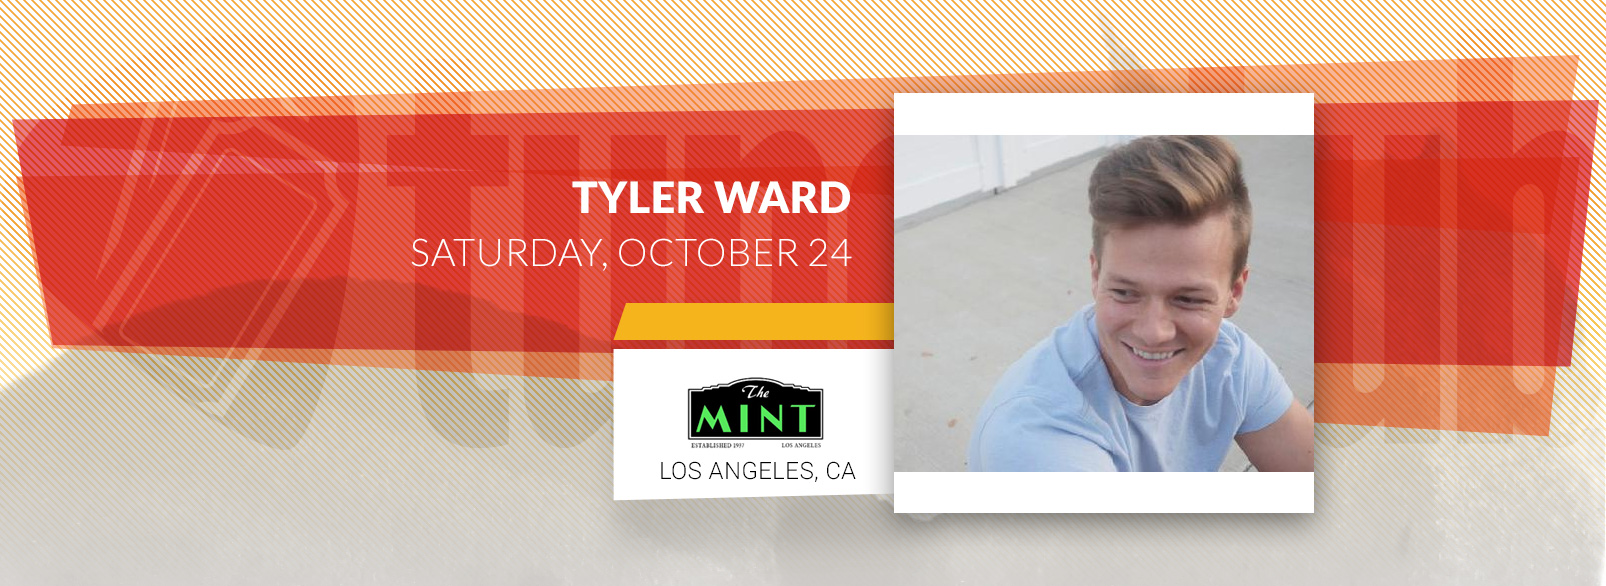 Tyler Ward @ The Mint